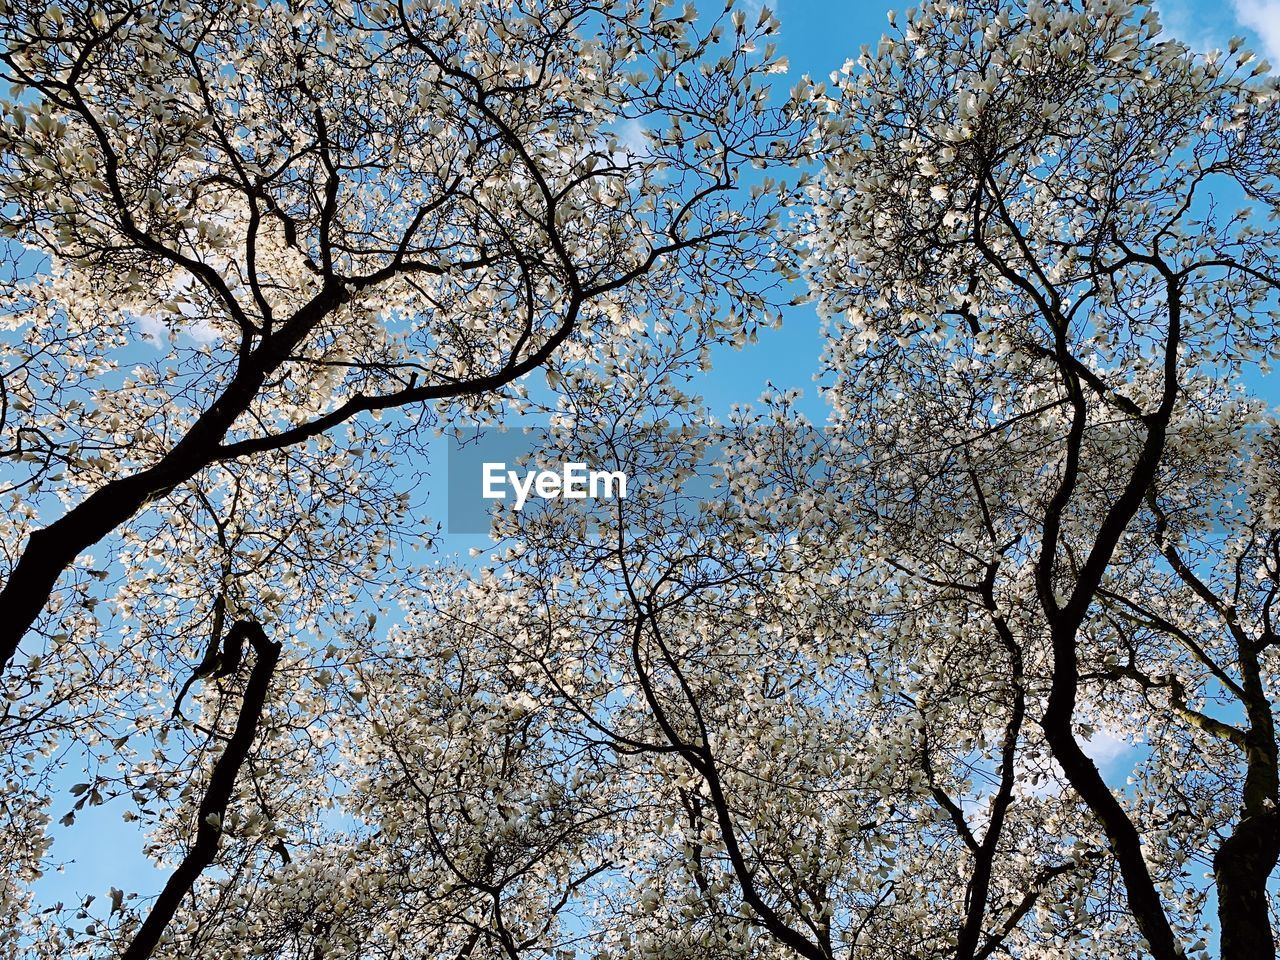 tree, low angle view, plant, sky, branch, beauty in nature, growth, nature, no people, day, backgrounds, flowering plant, outdoors, blue, flower, clear sky, full frame, tranquility, blossom, springtime, tree canopy, cherry blossom, directly below, spring